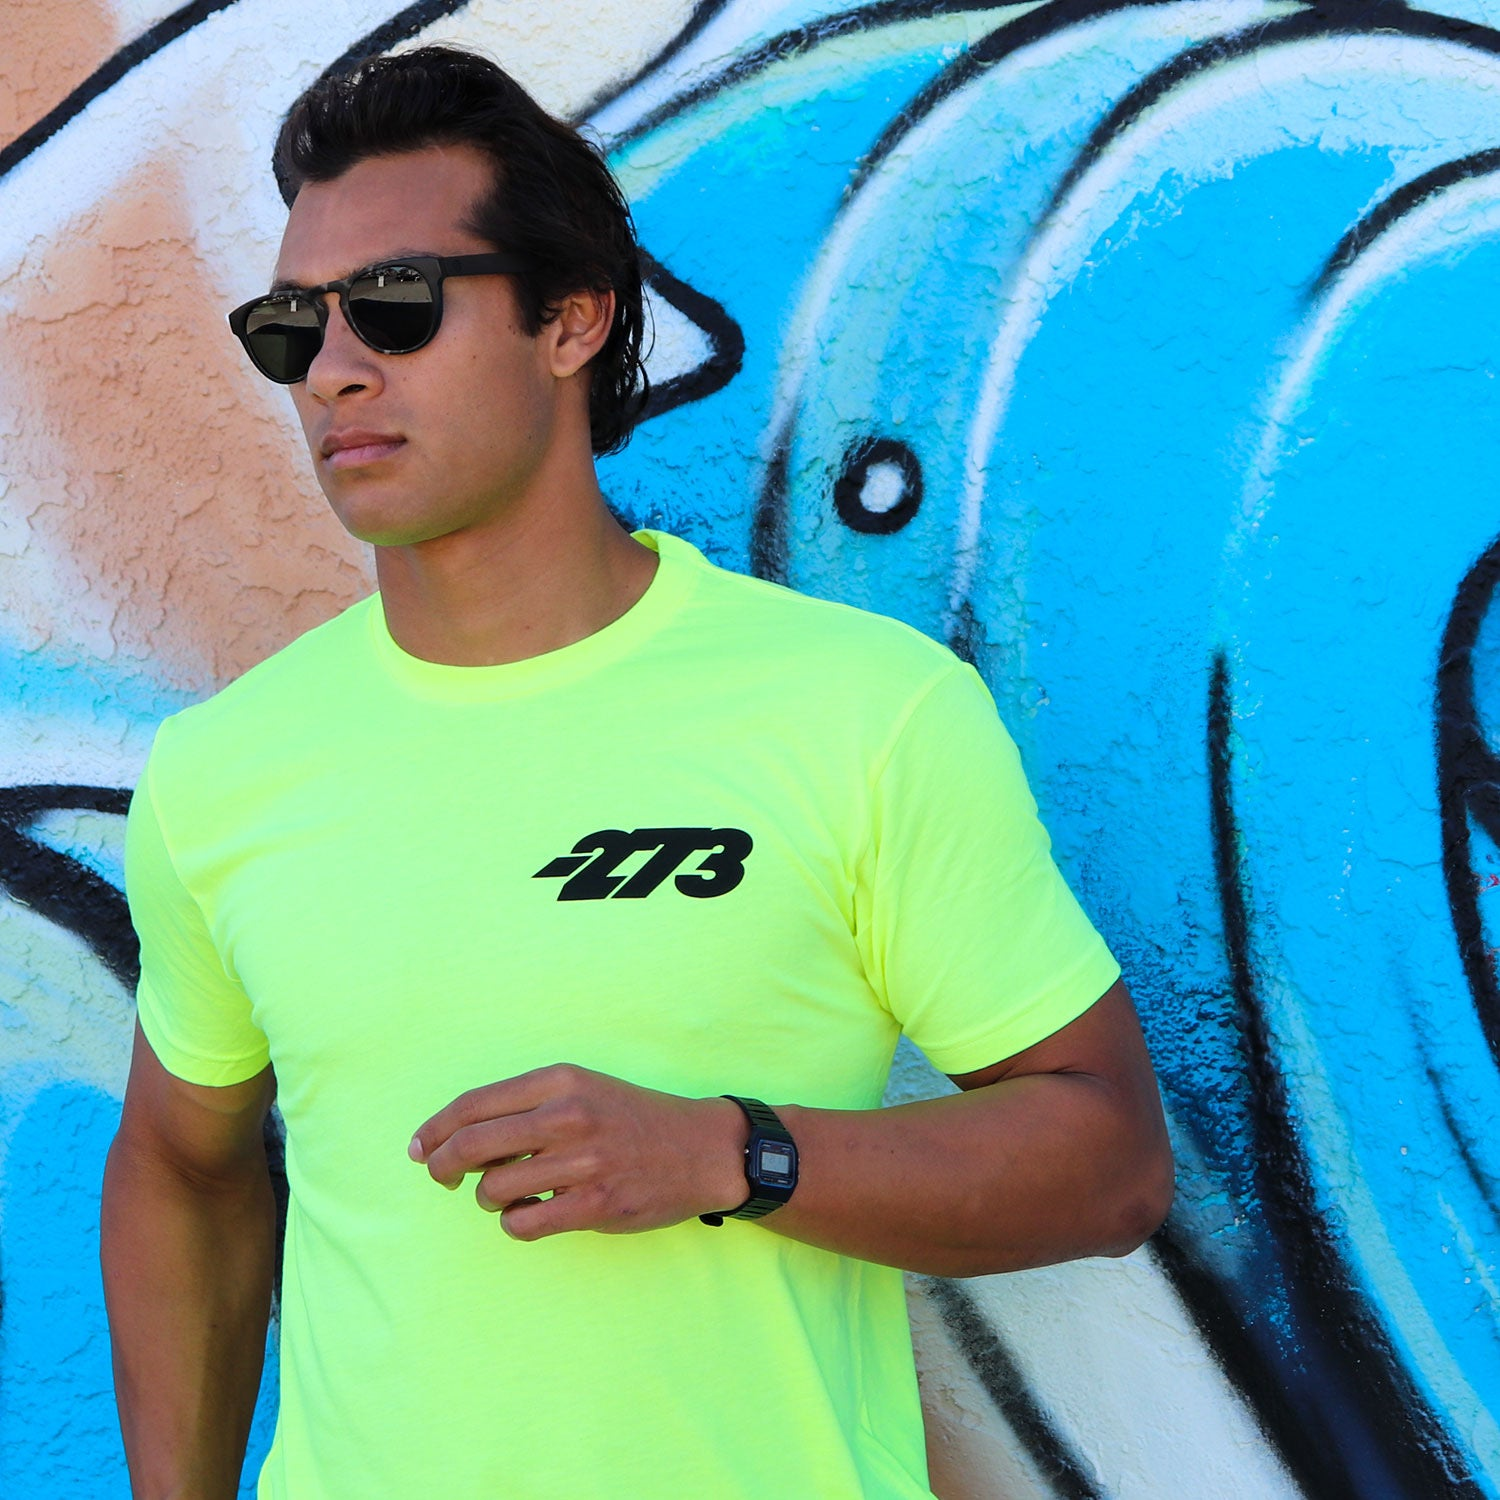 CORP II Tee HiViz Yellow/Black